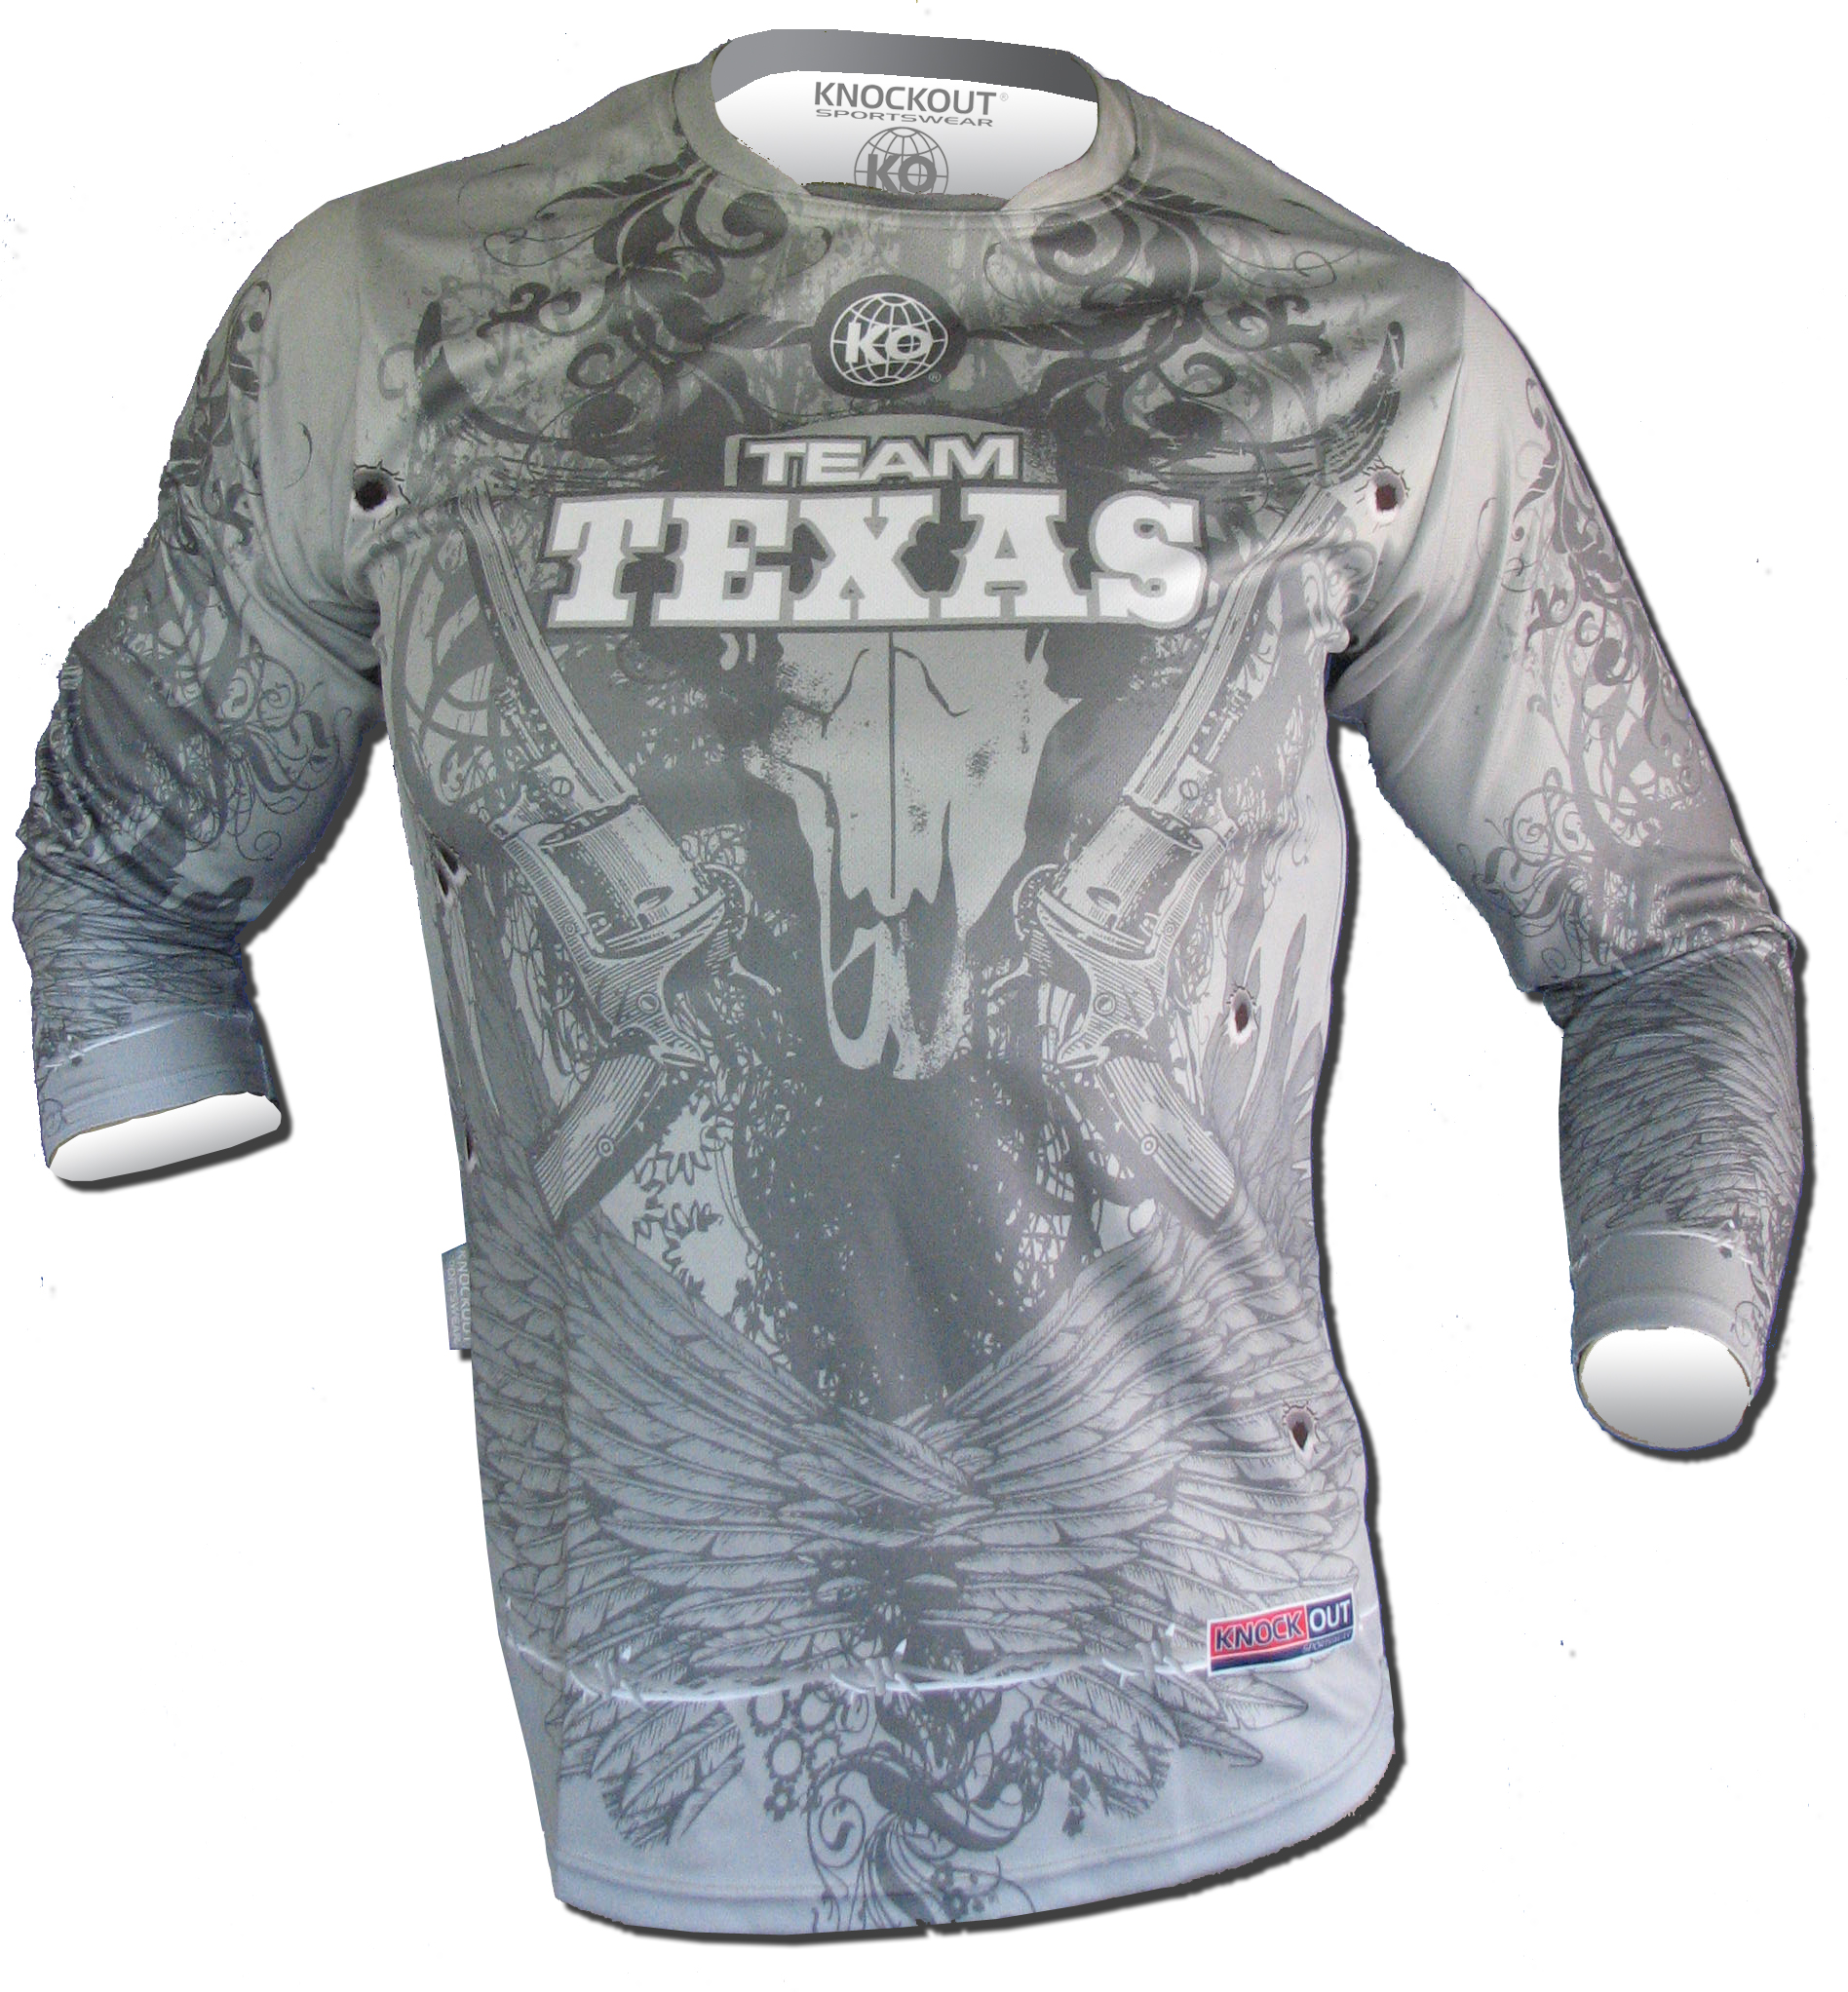 2012 Texas National Team Men's Performance Top For Sale